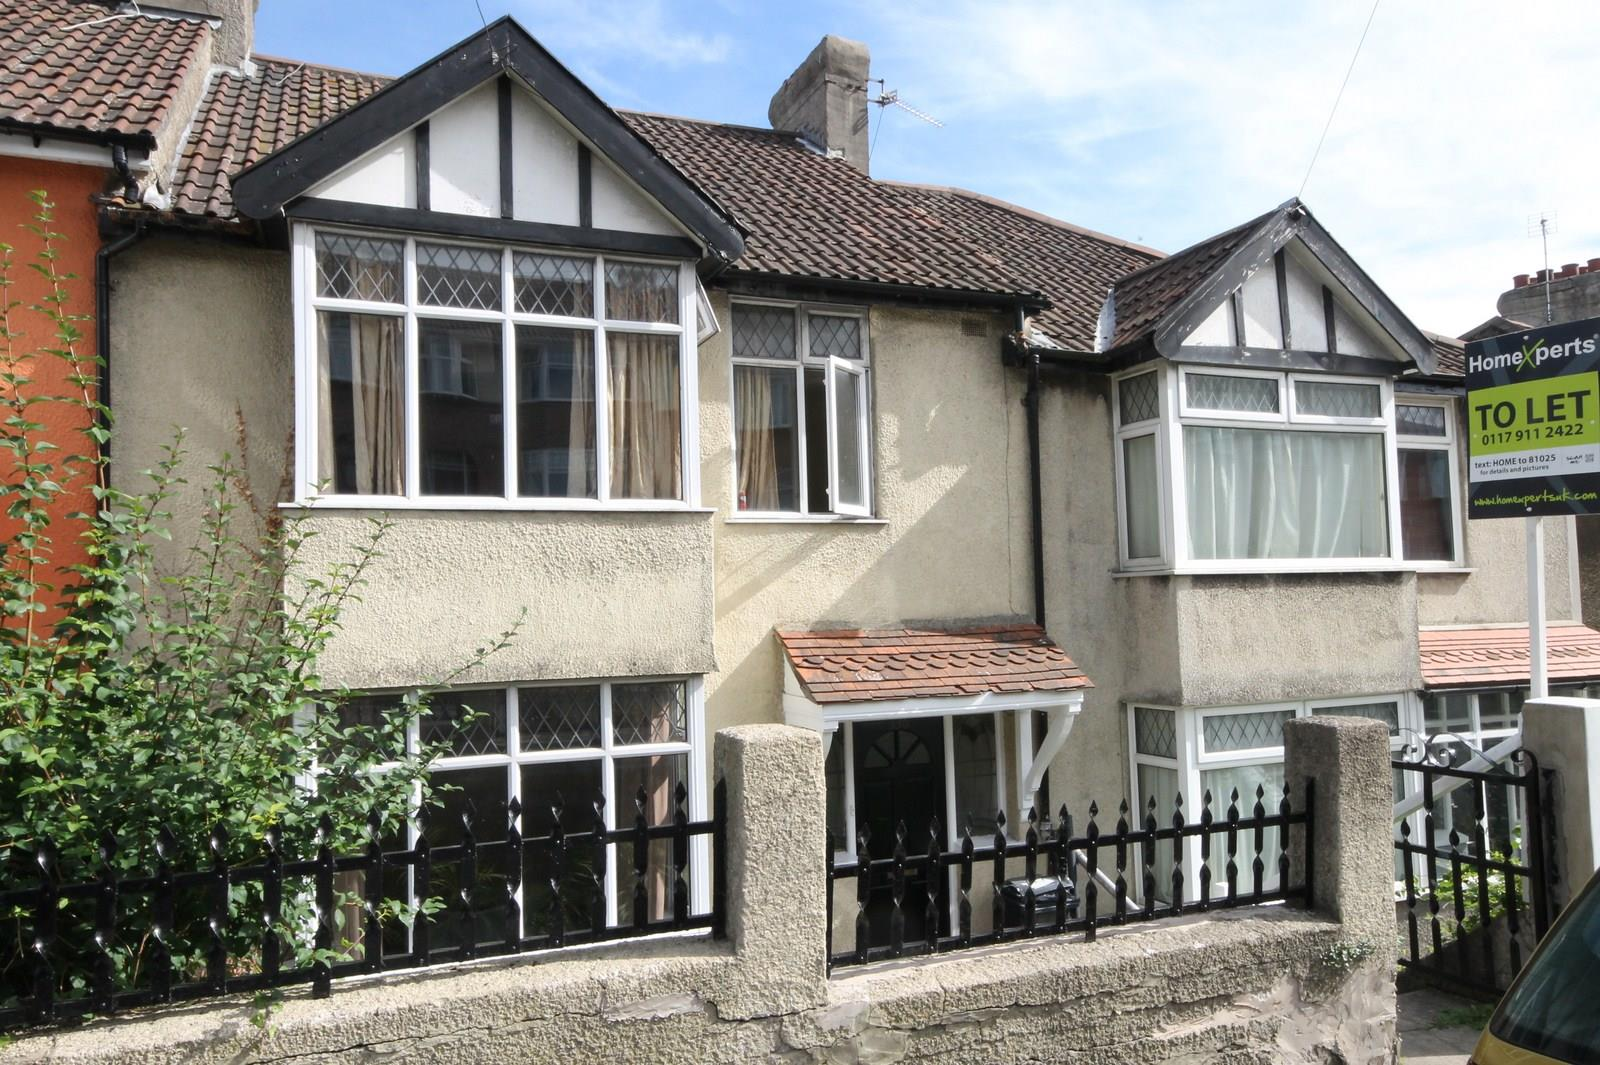 3 bed house to rent in Ashley Down Road, Bristol, BS7